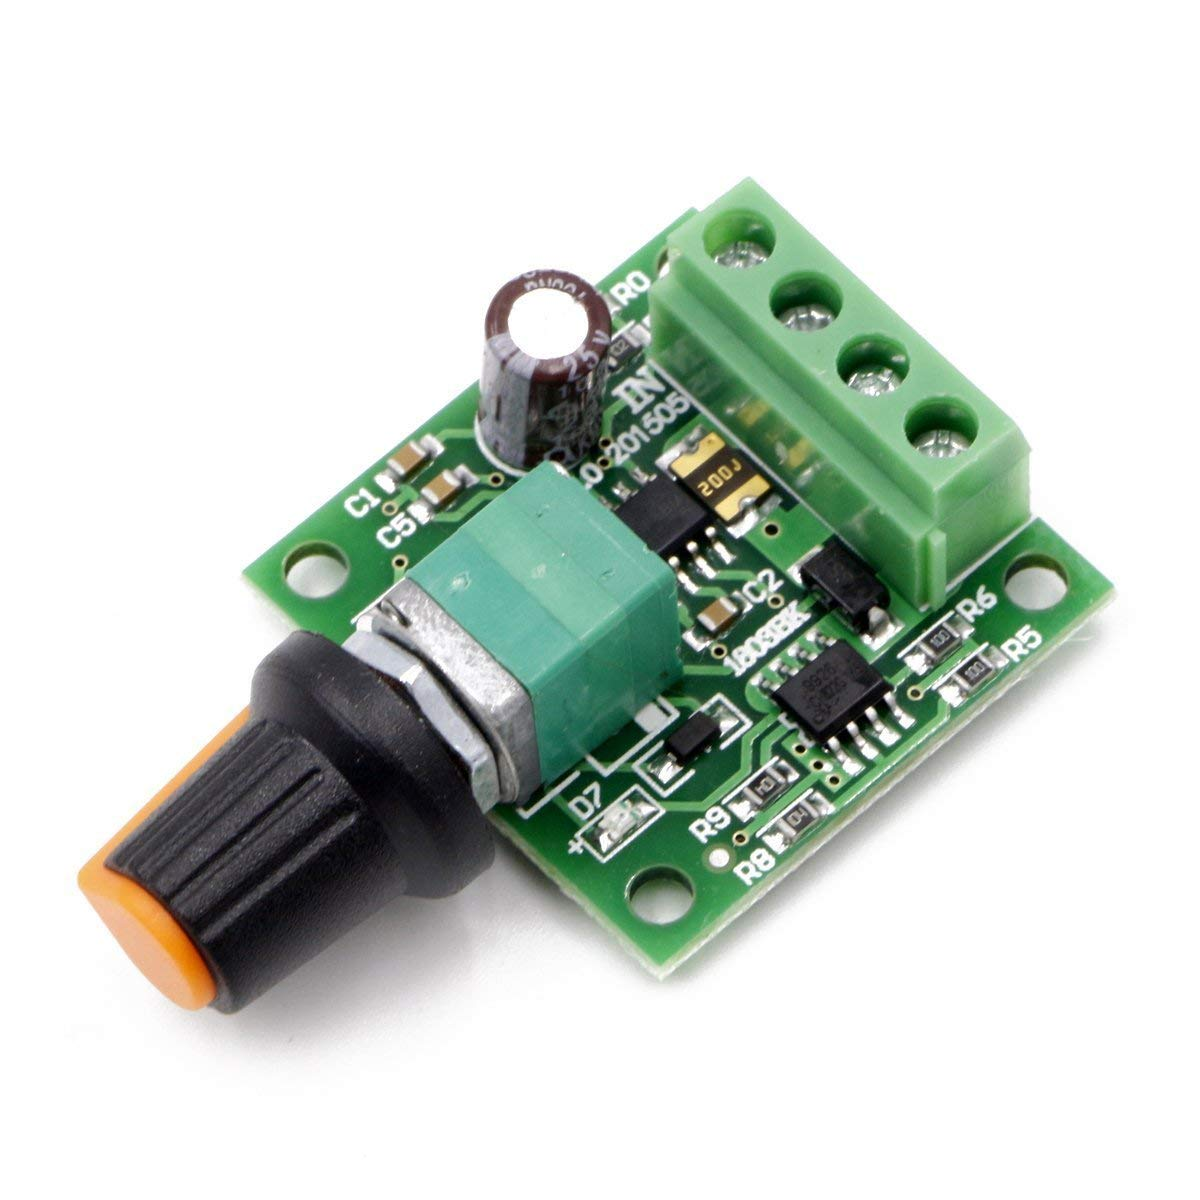 Low Voltage Dc 1.8v 3v 5v 6v 12v 2a Motor Speed Controller PWM 2PCS